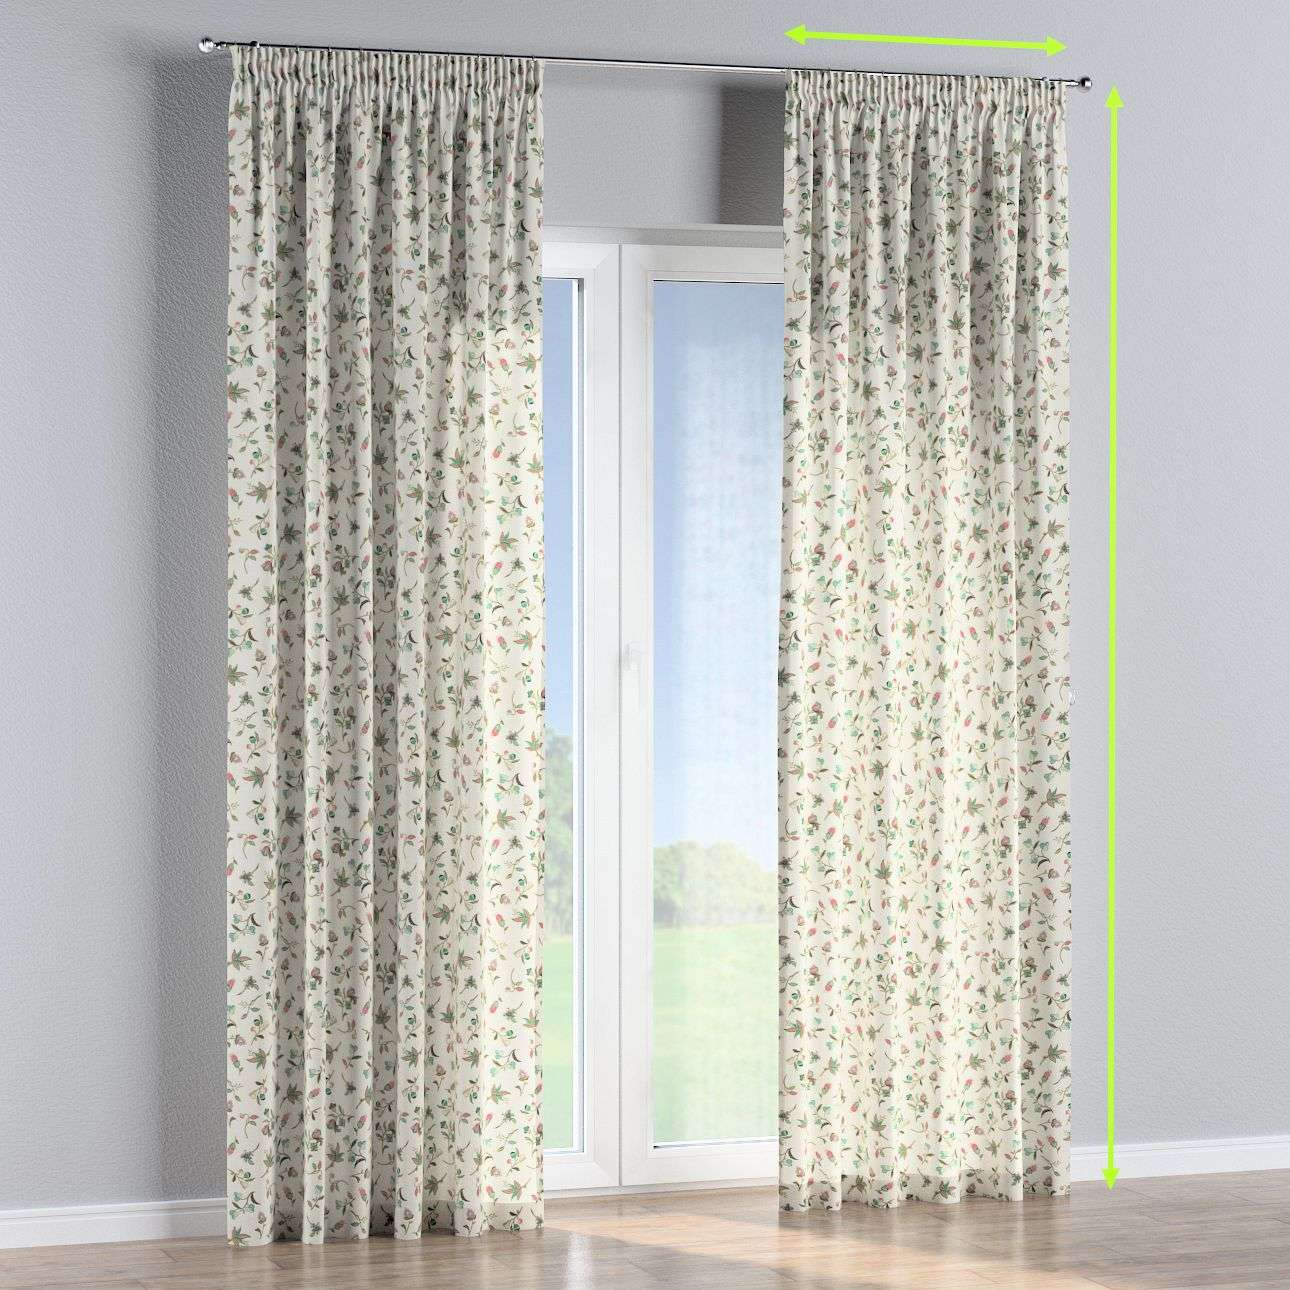 Pencil pleat lined curtains in collection Londres, fabric: 122-02